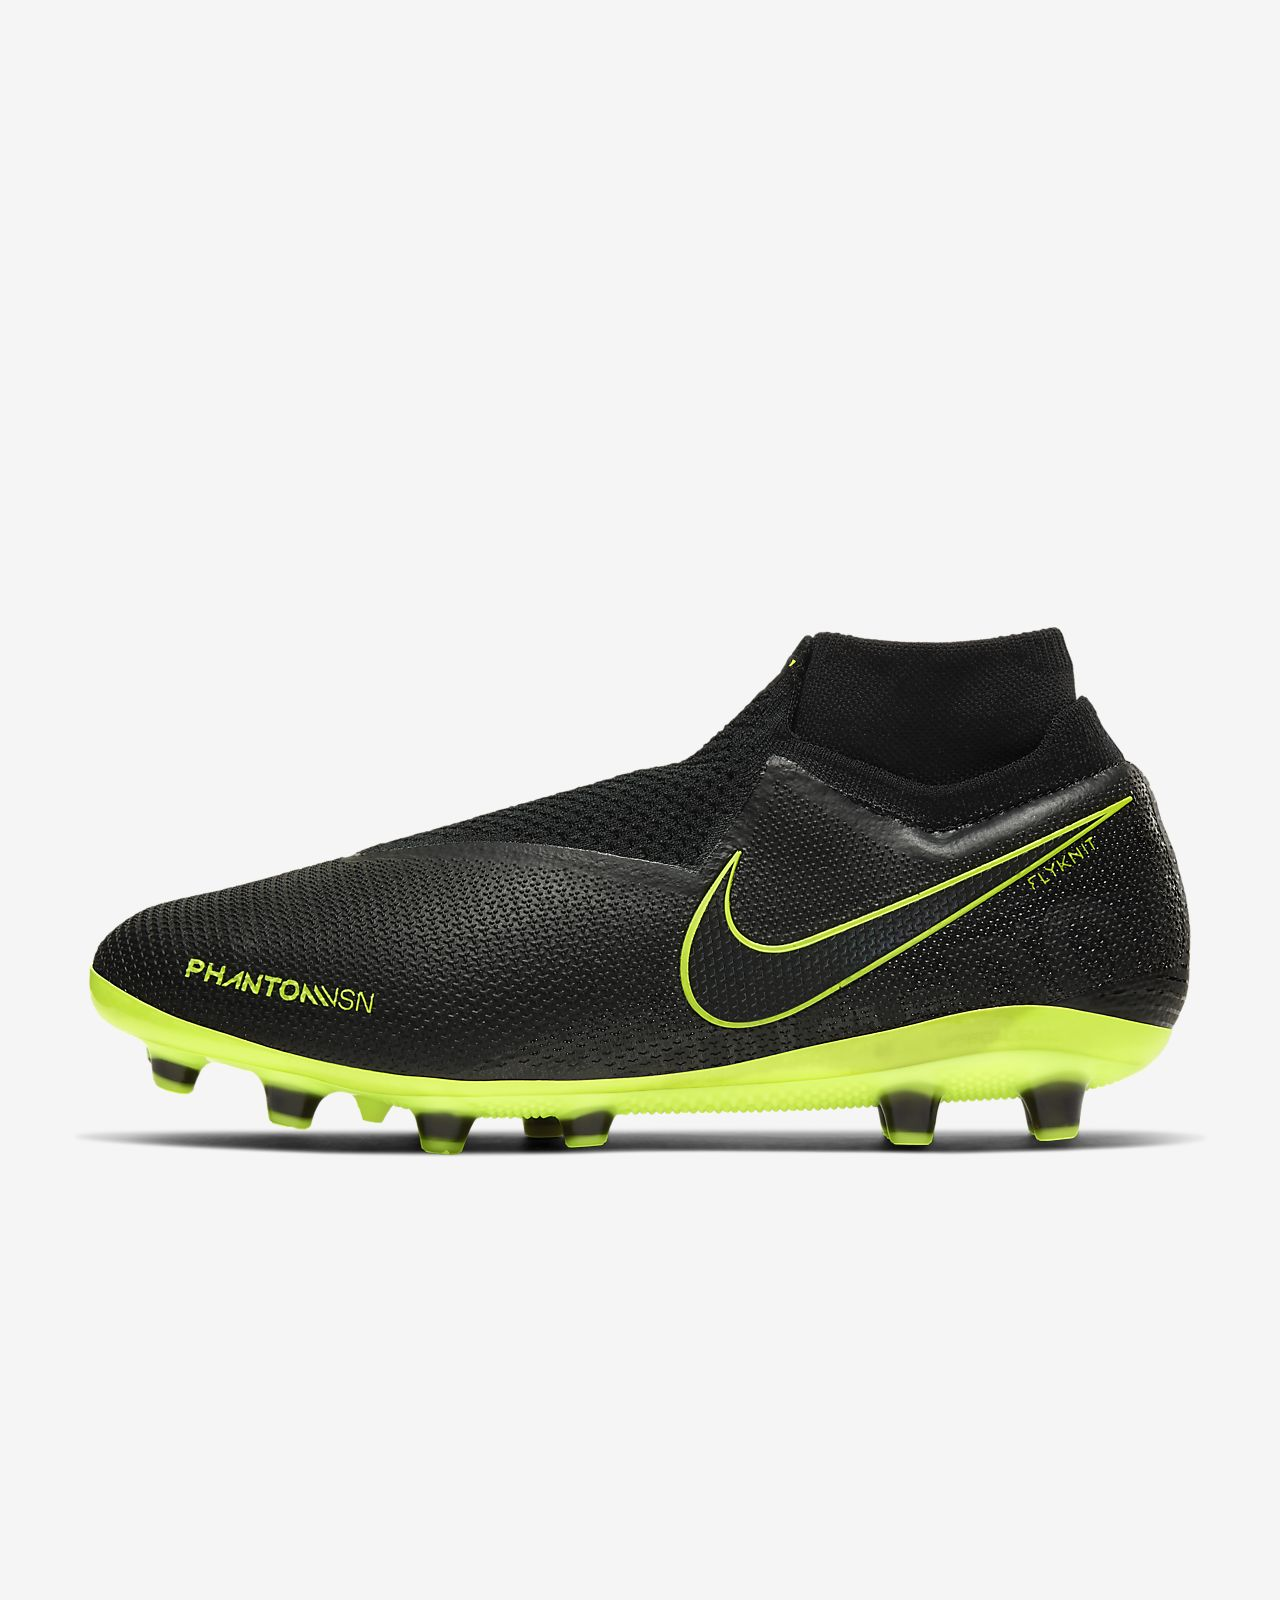 Nike Phantom Vision Elite Dynamic Fit Artificial-Grass Football Boot